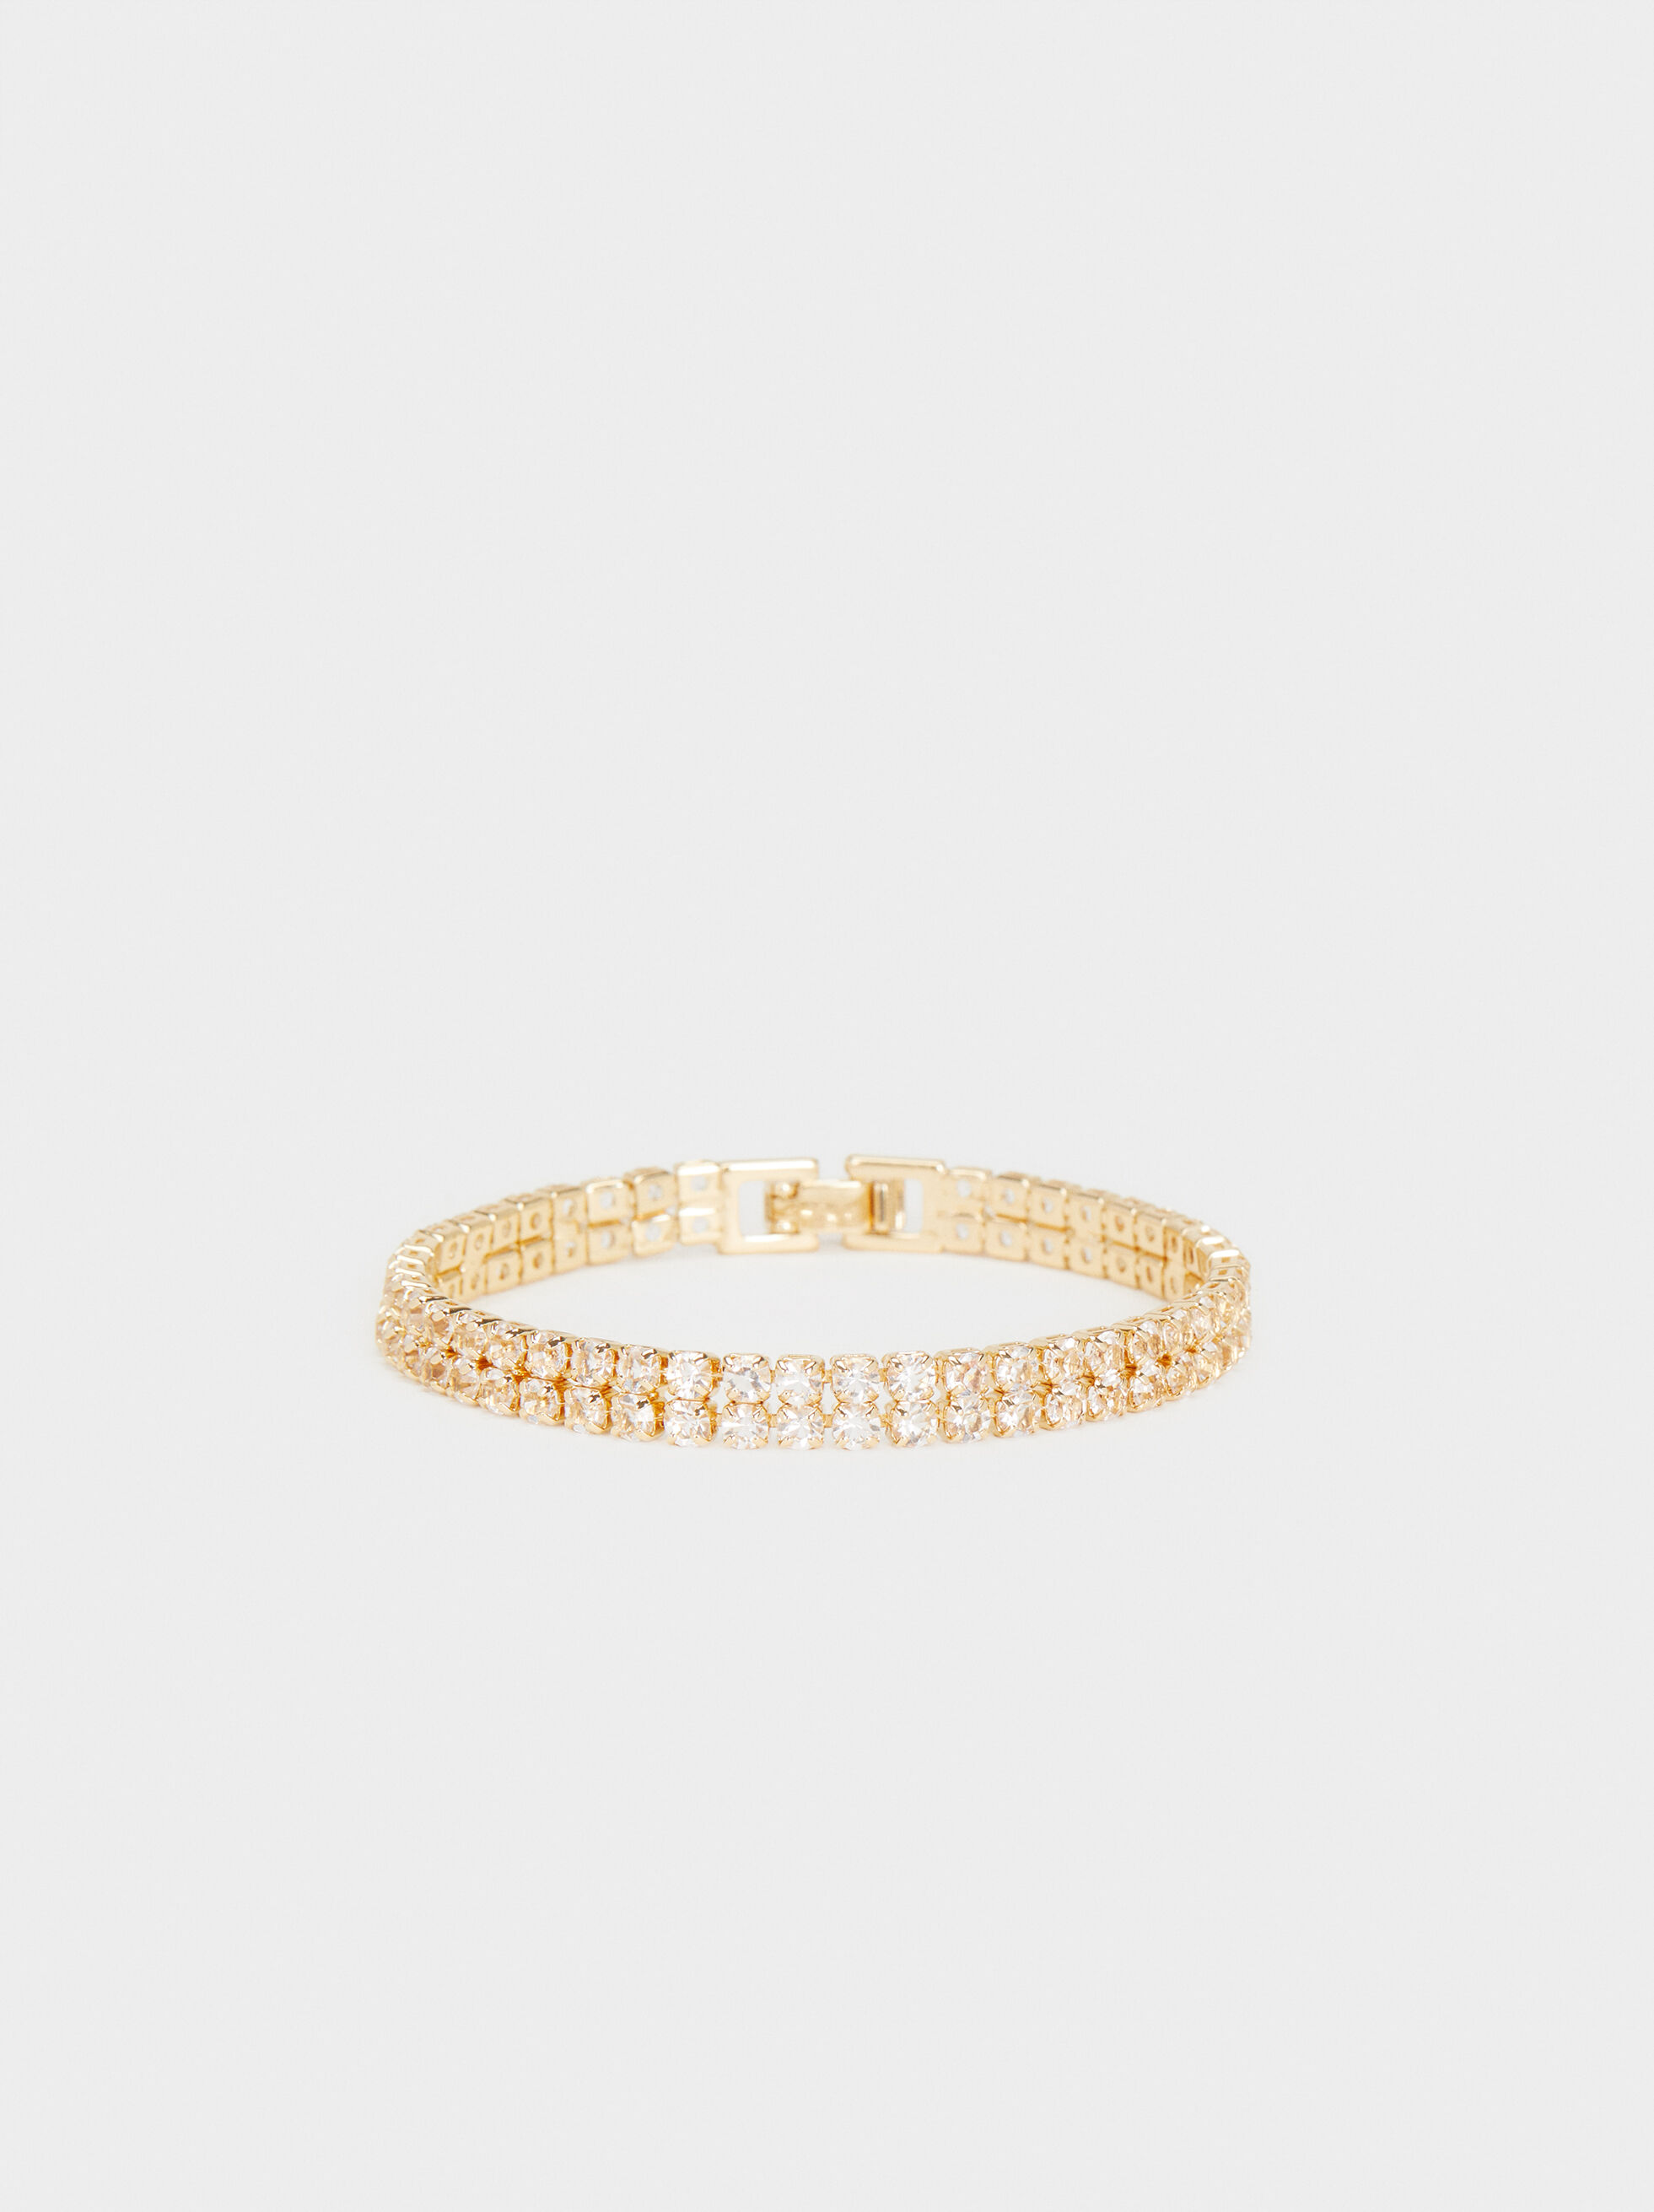 Metallic Braided Bracelet, , hi-res